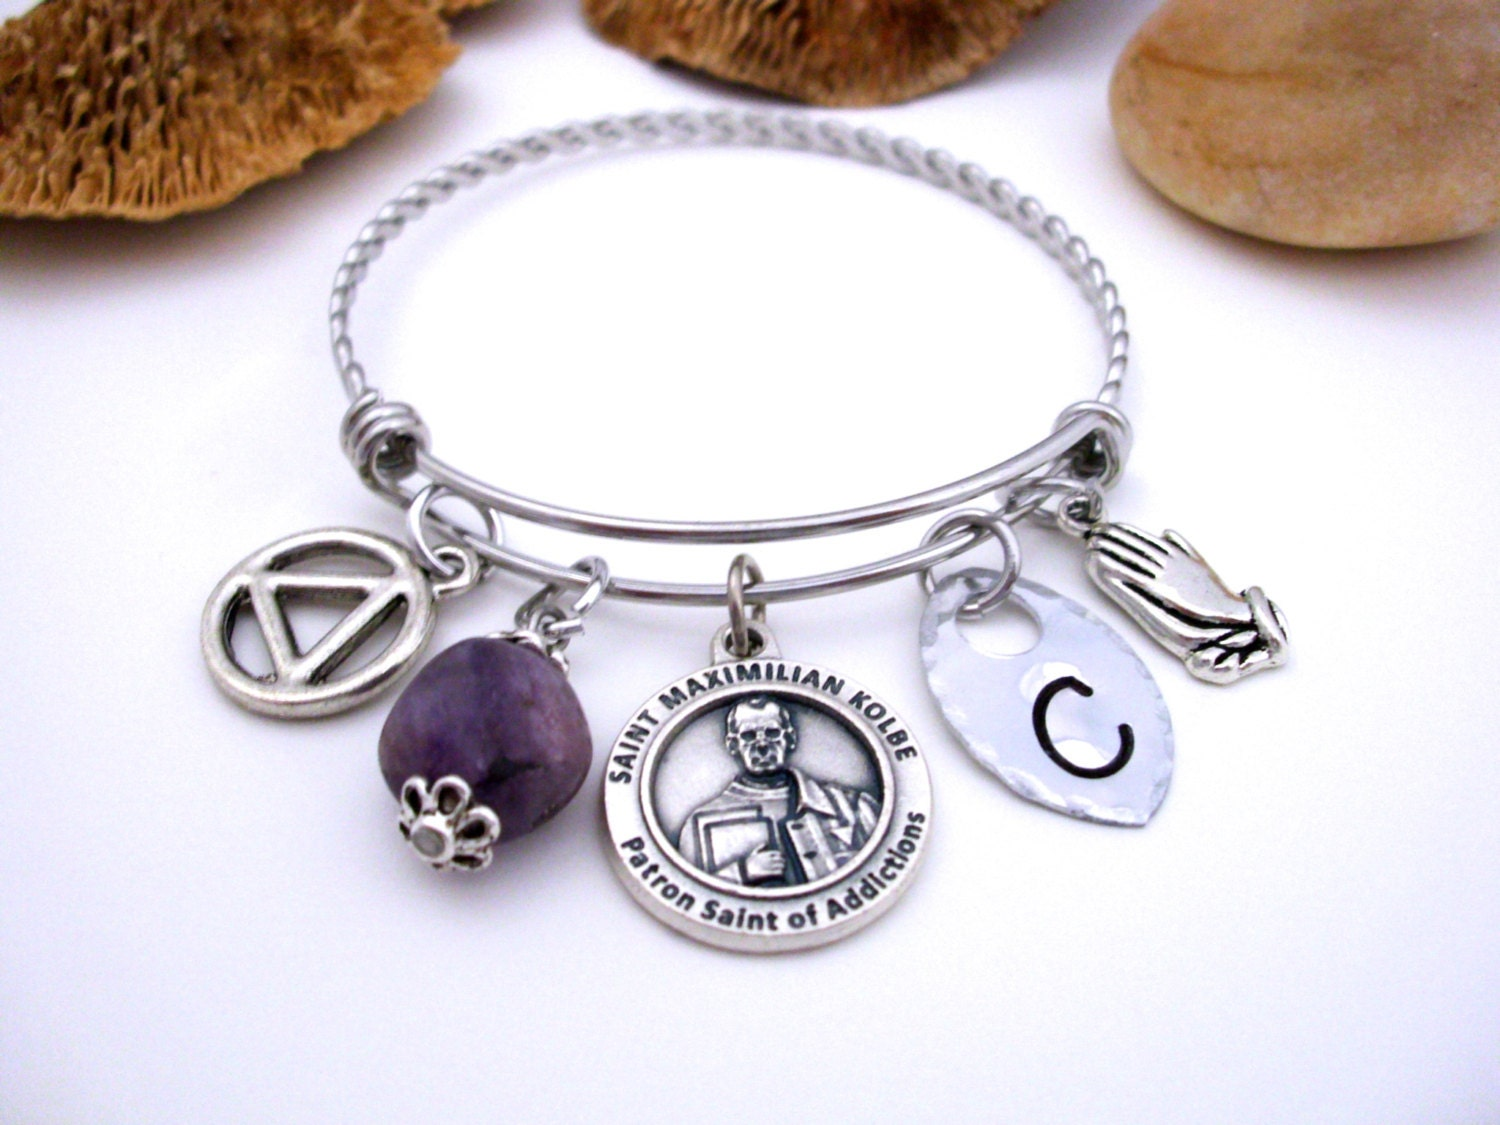 alcoholic addiction recovery aa jewelry 12 step help new